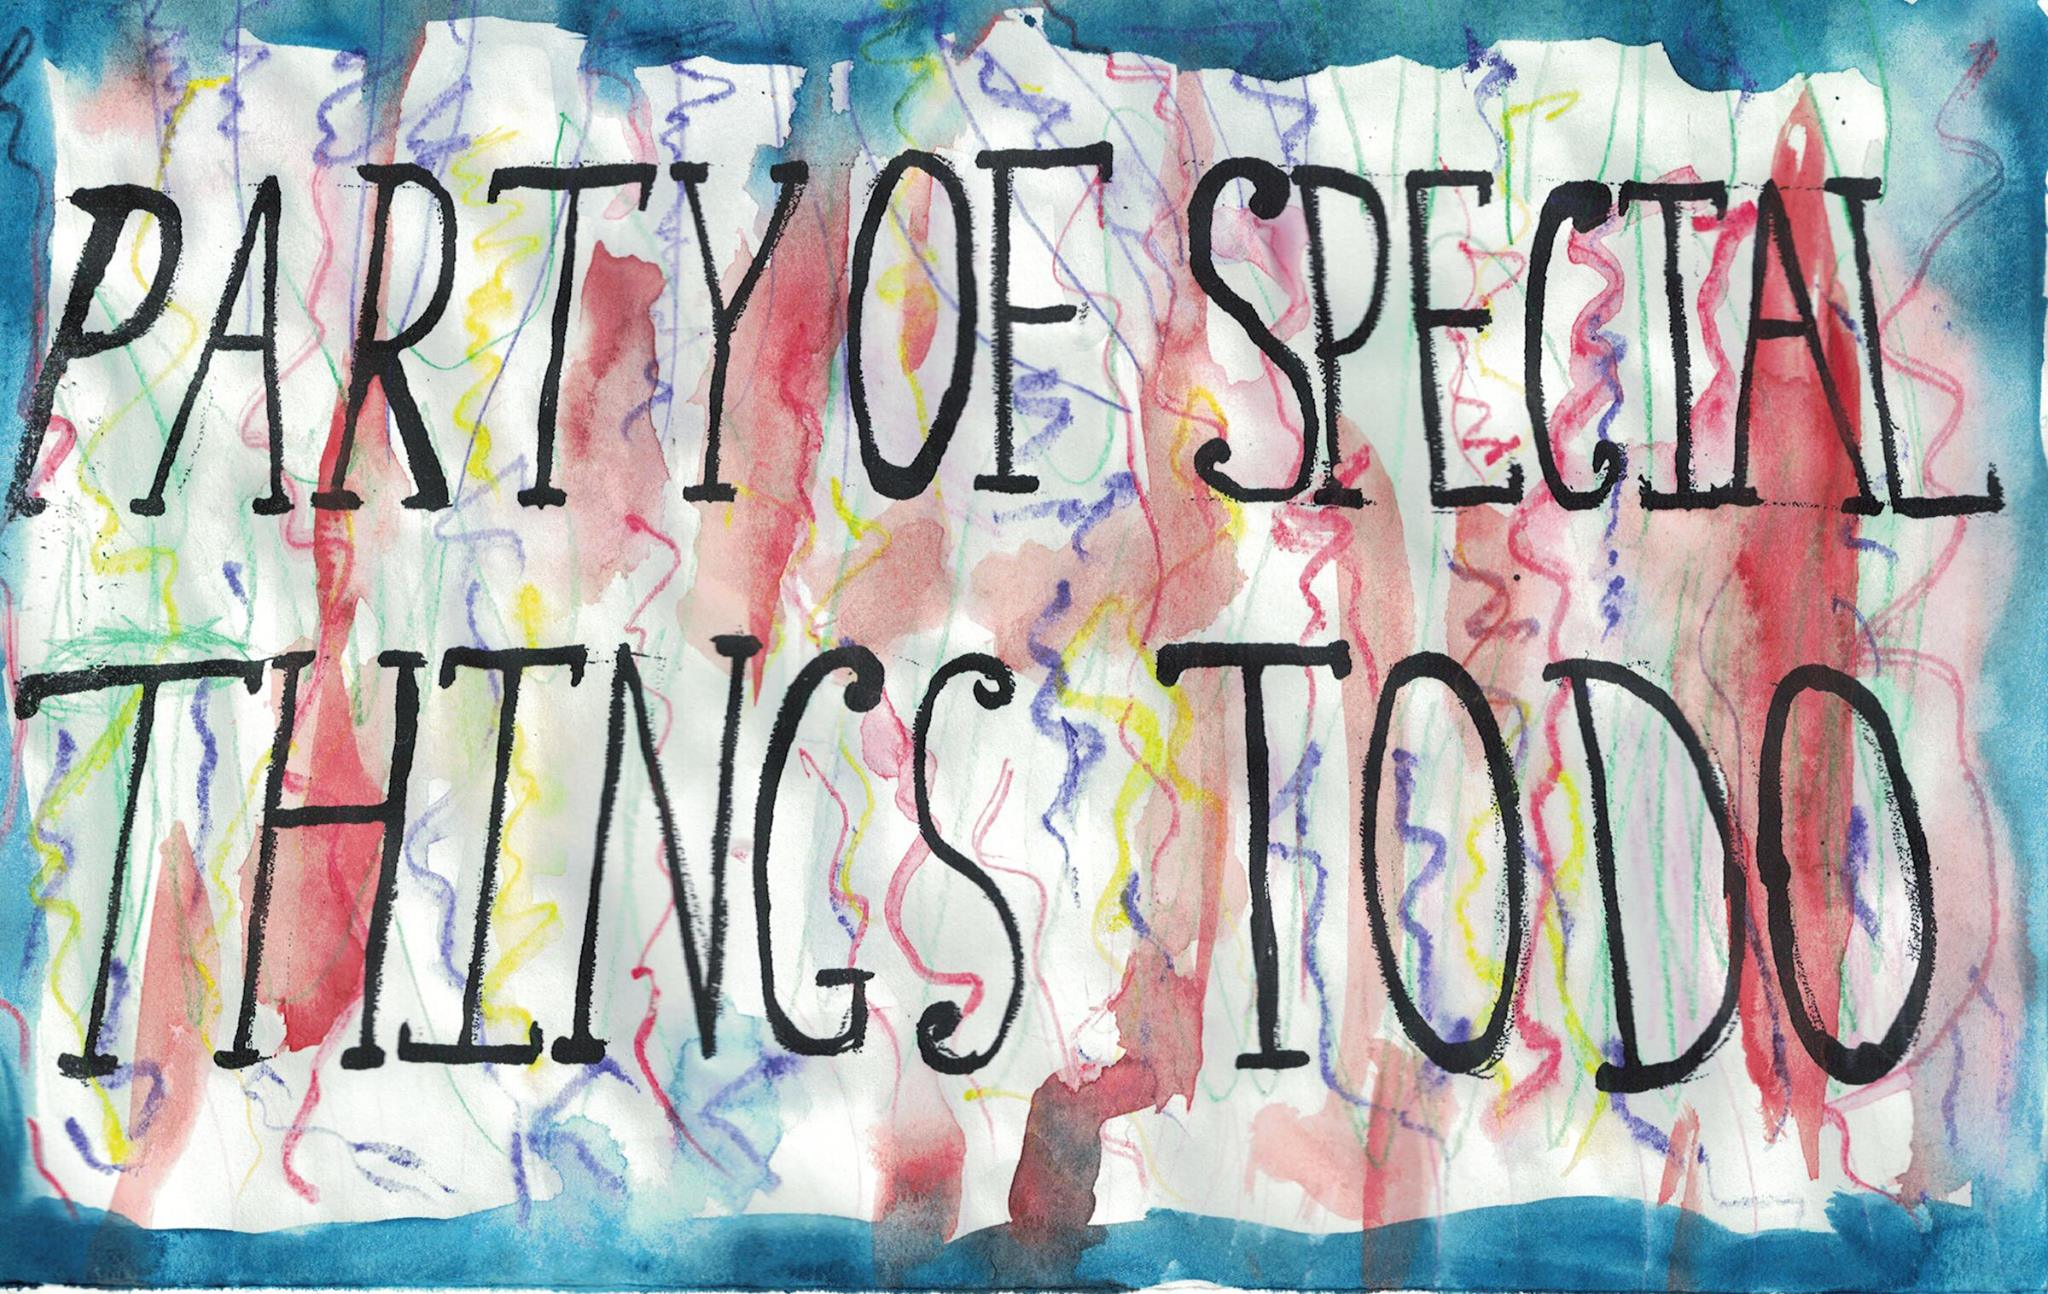 Party Of Special Things To Do